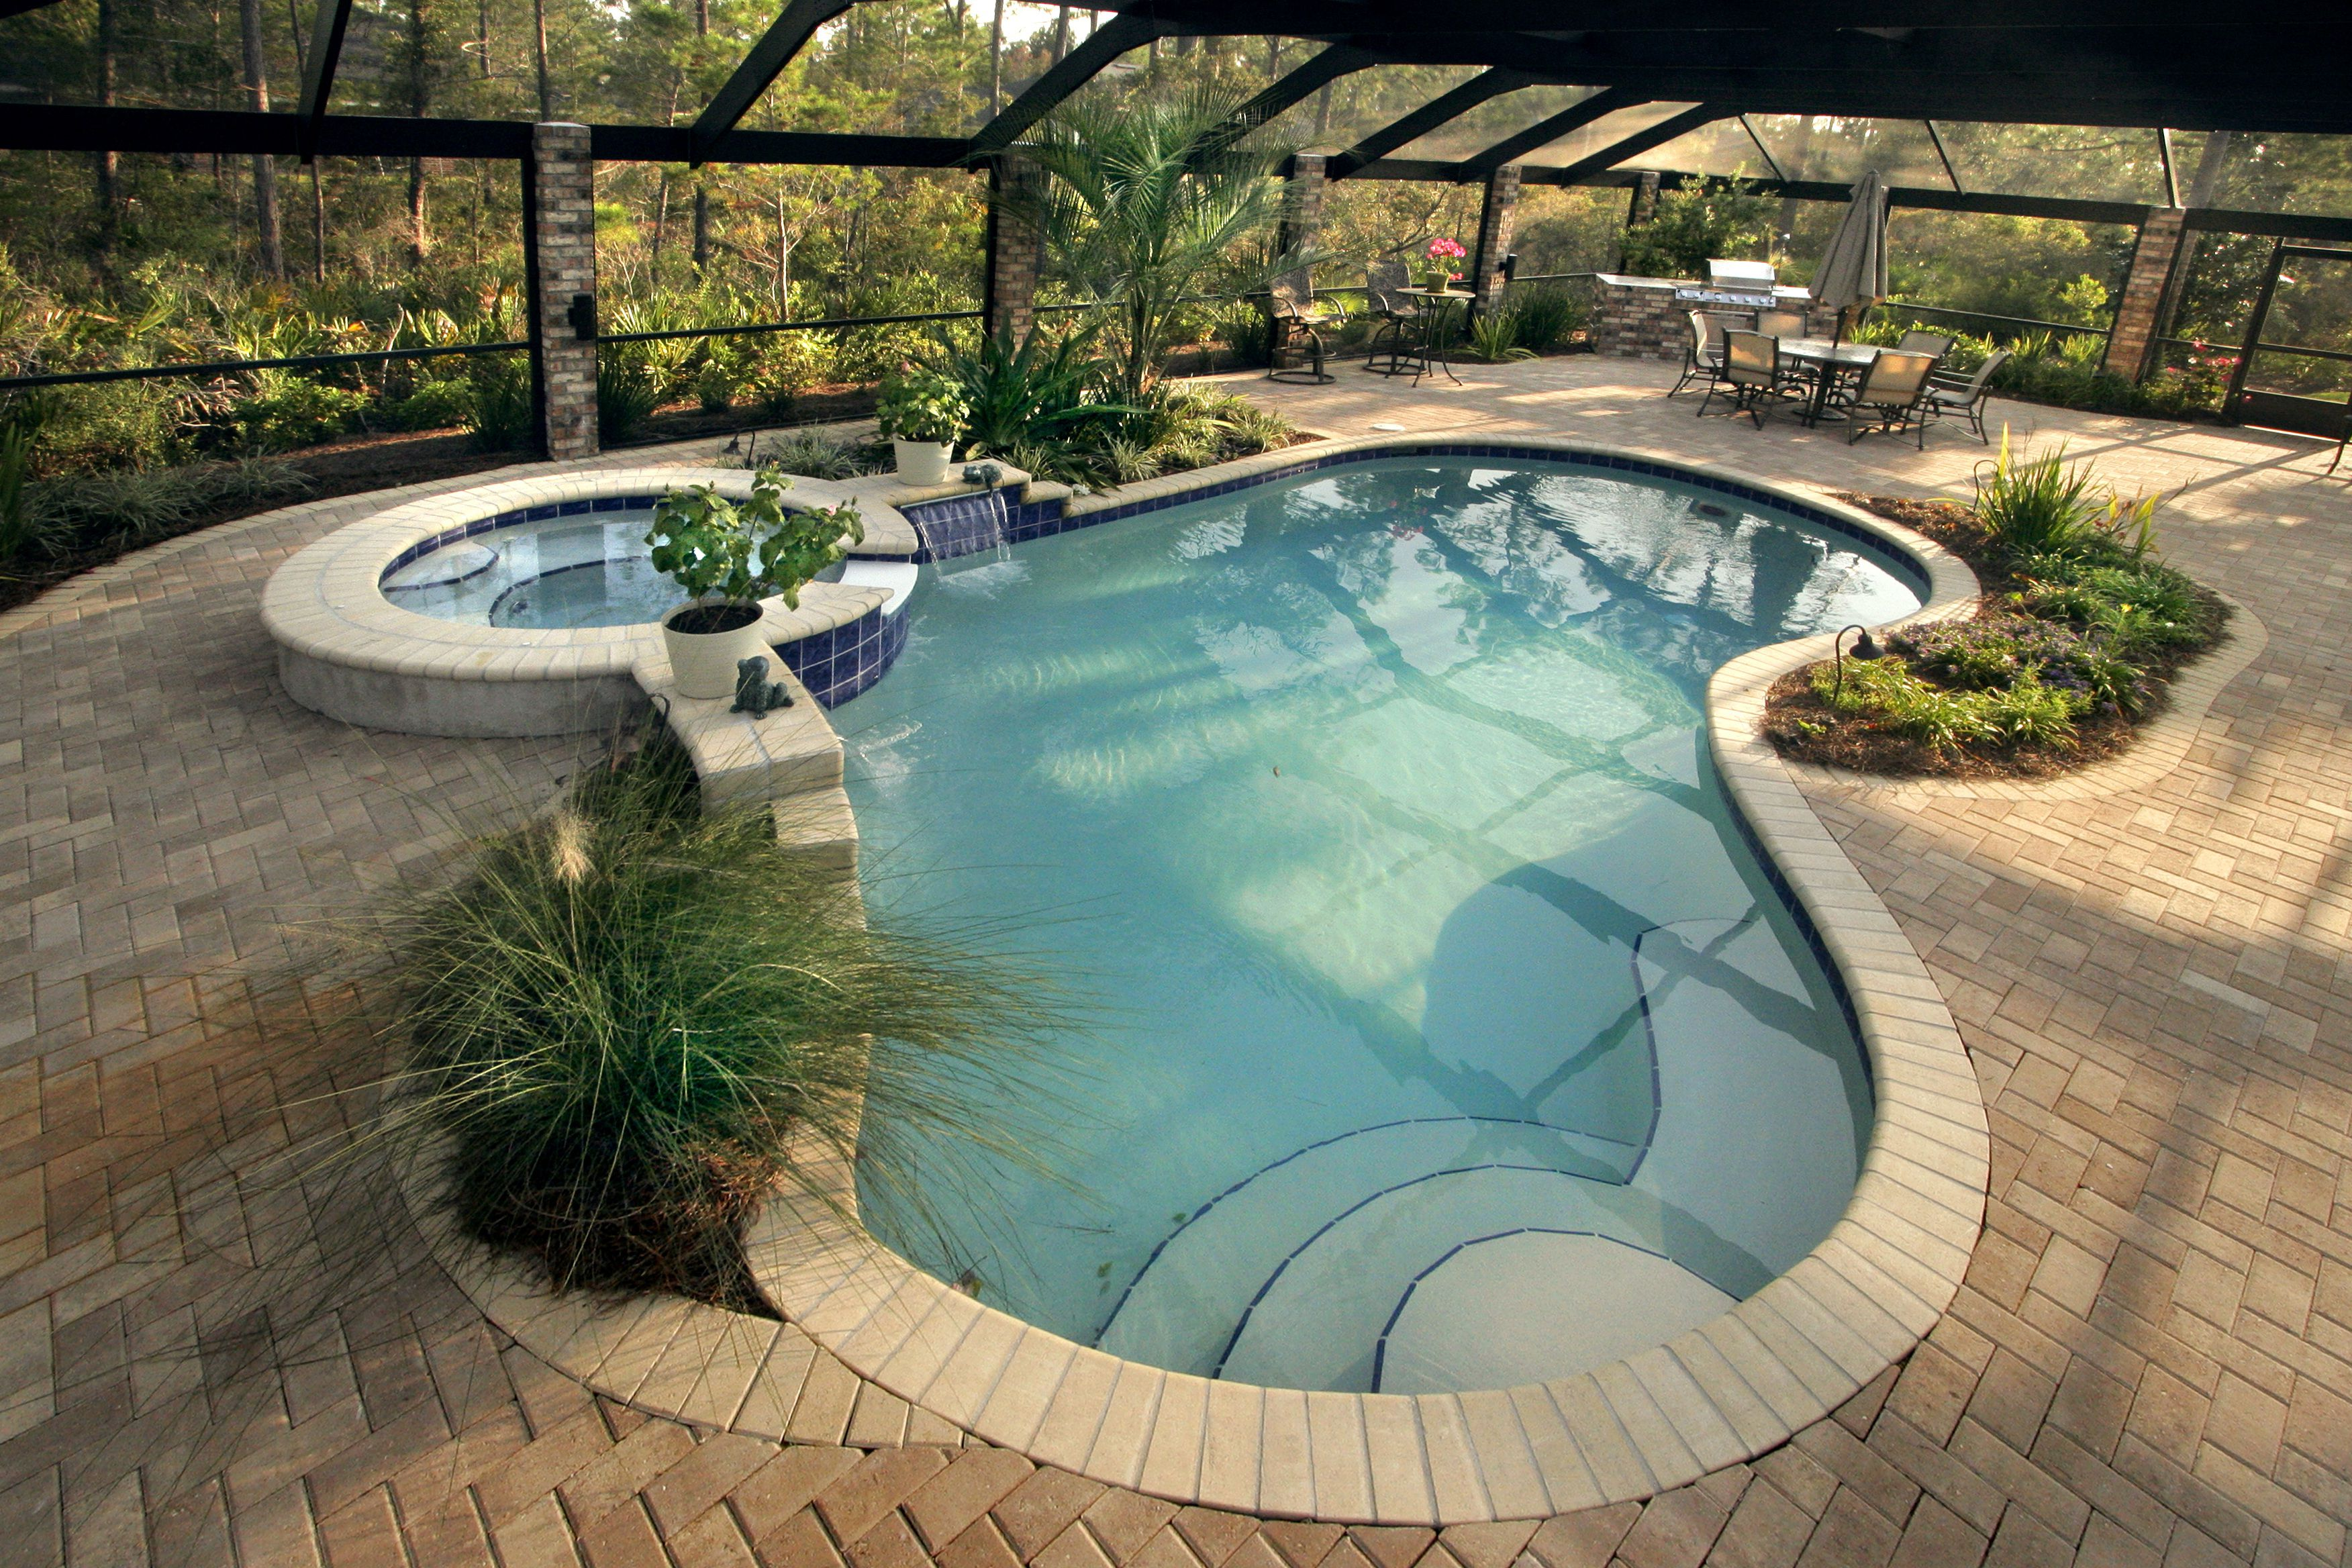 Home Outdoor Pools stunning best swimming pool designs pictures - interior design